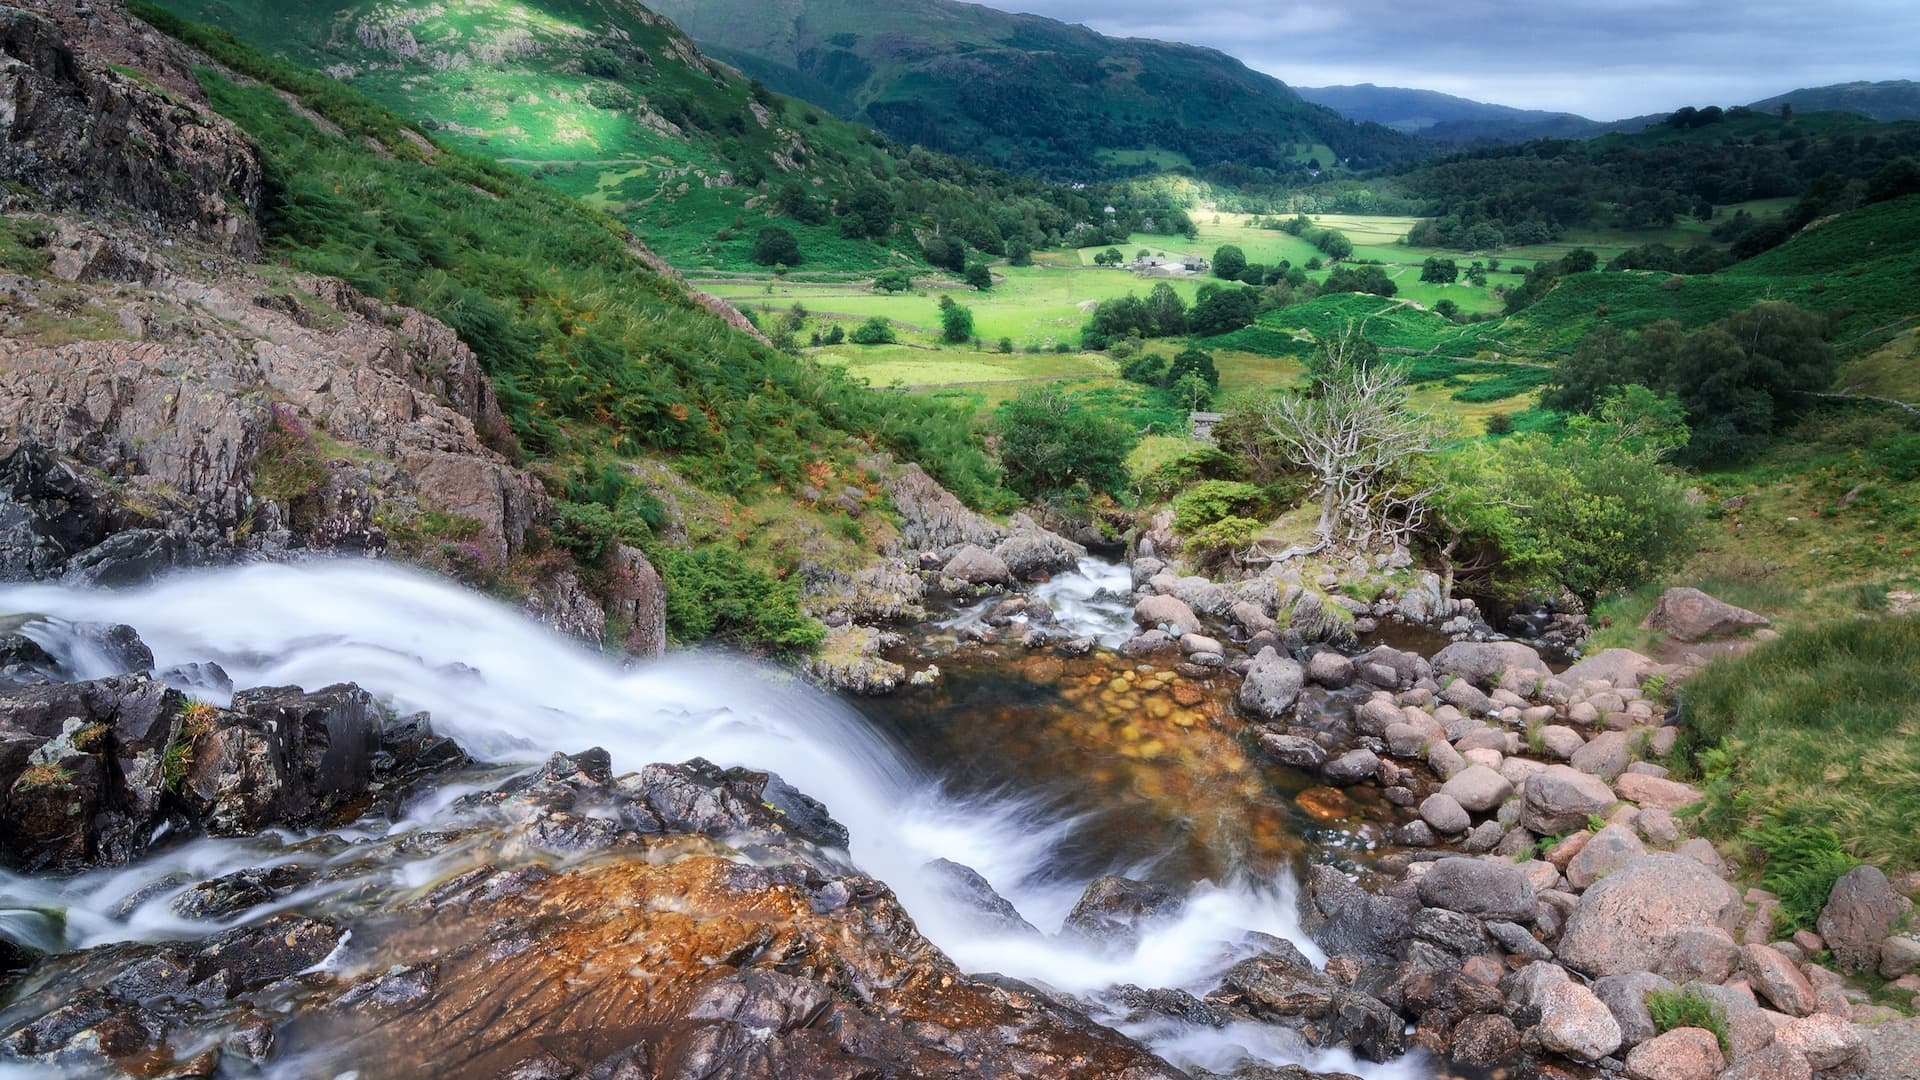 Visiting Sour Milk Ghyll near Grasmere